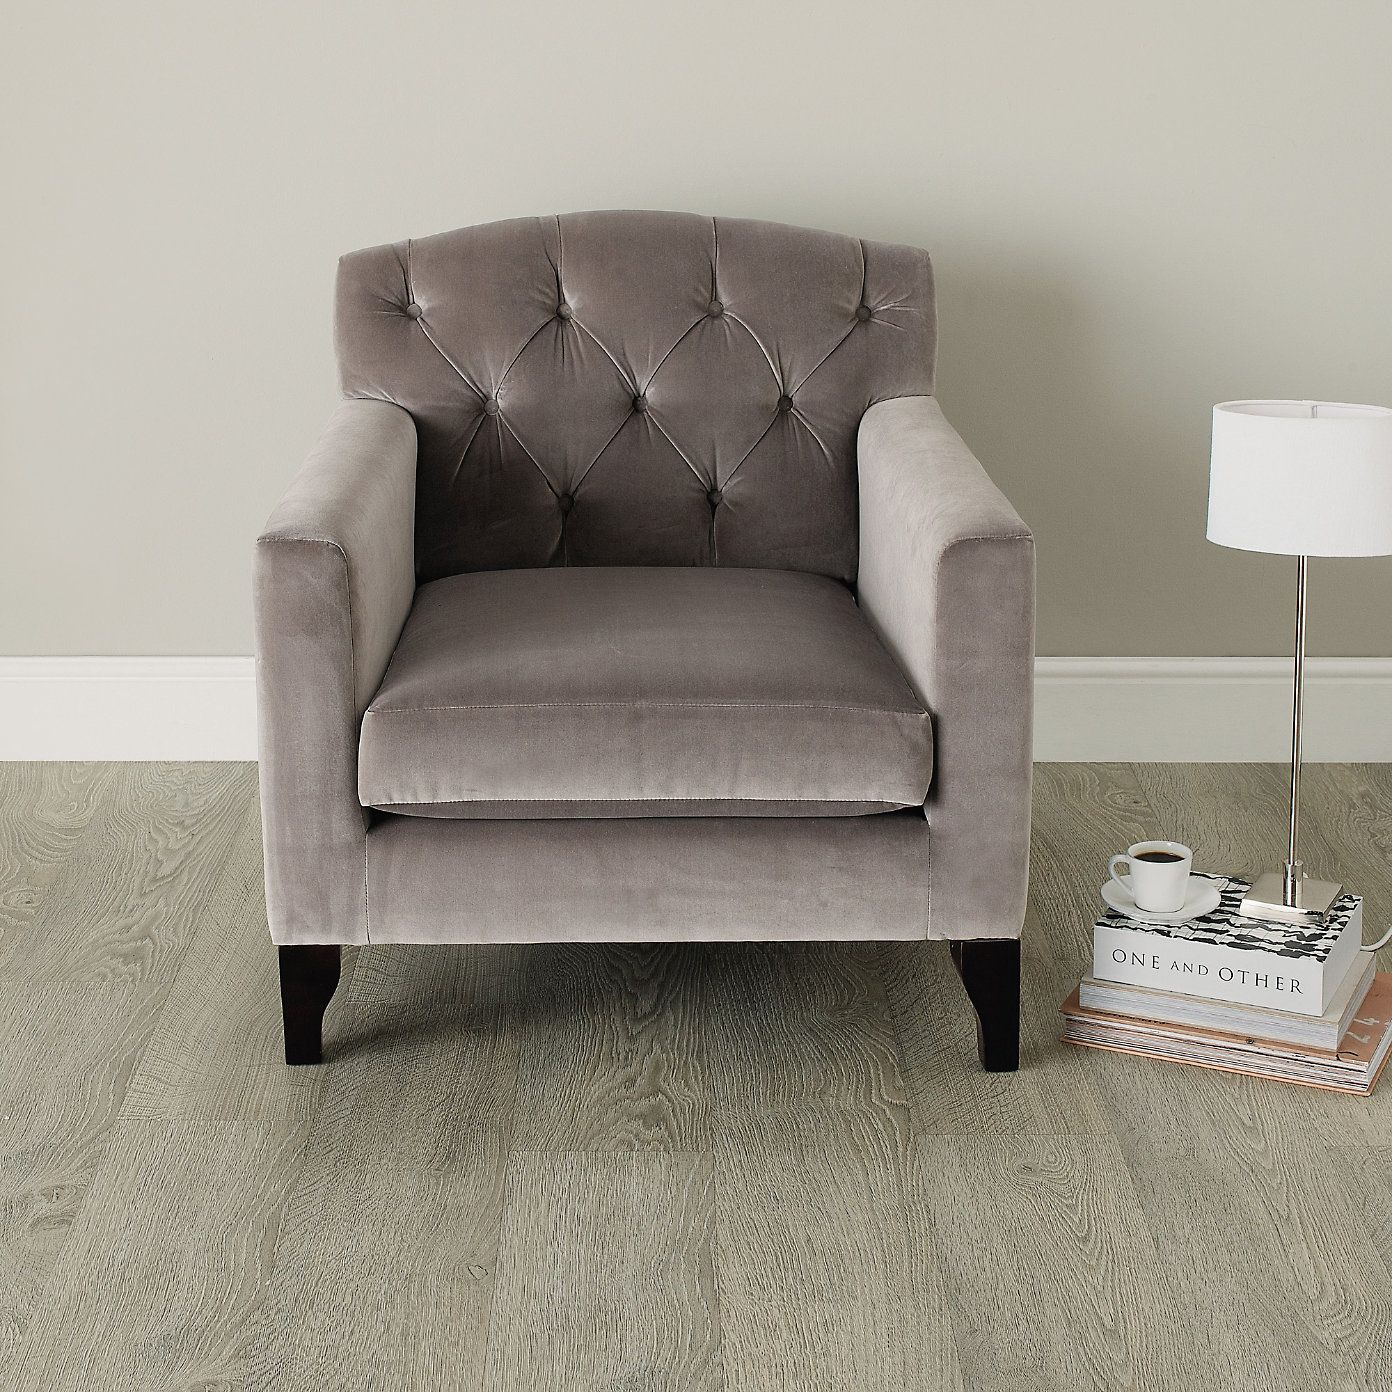 Buy Furniture Sofas & Chairs Eaton Armchair from The White